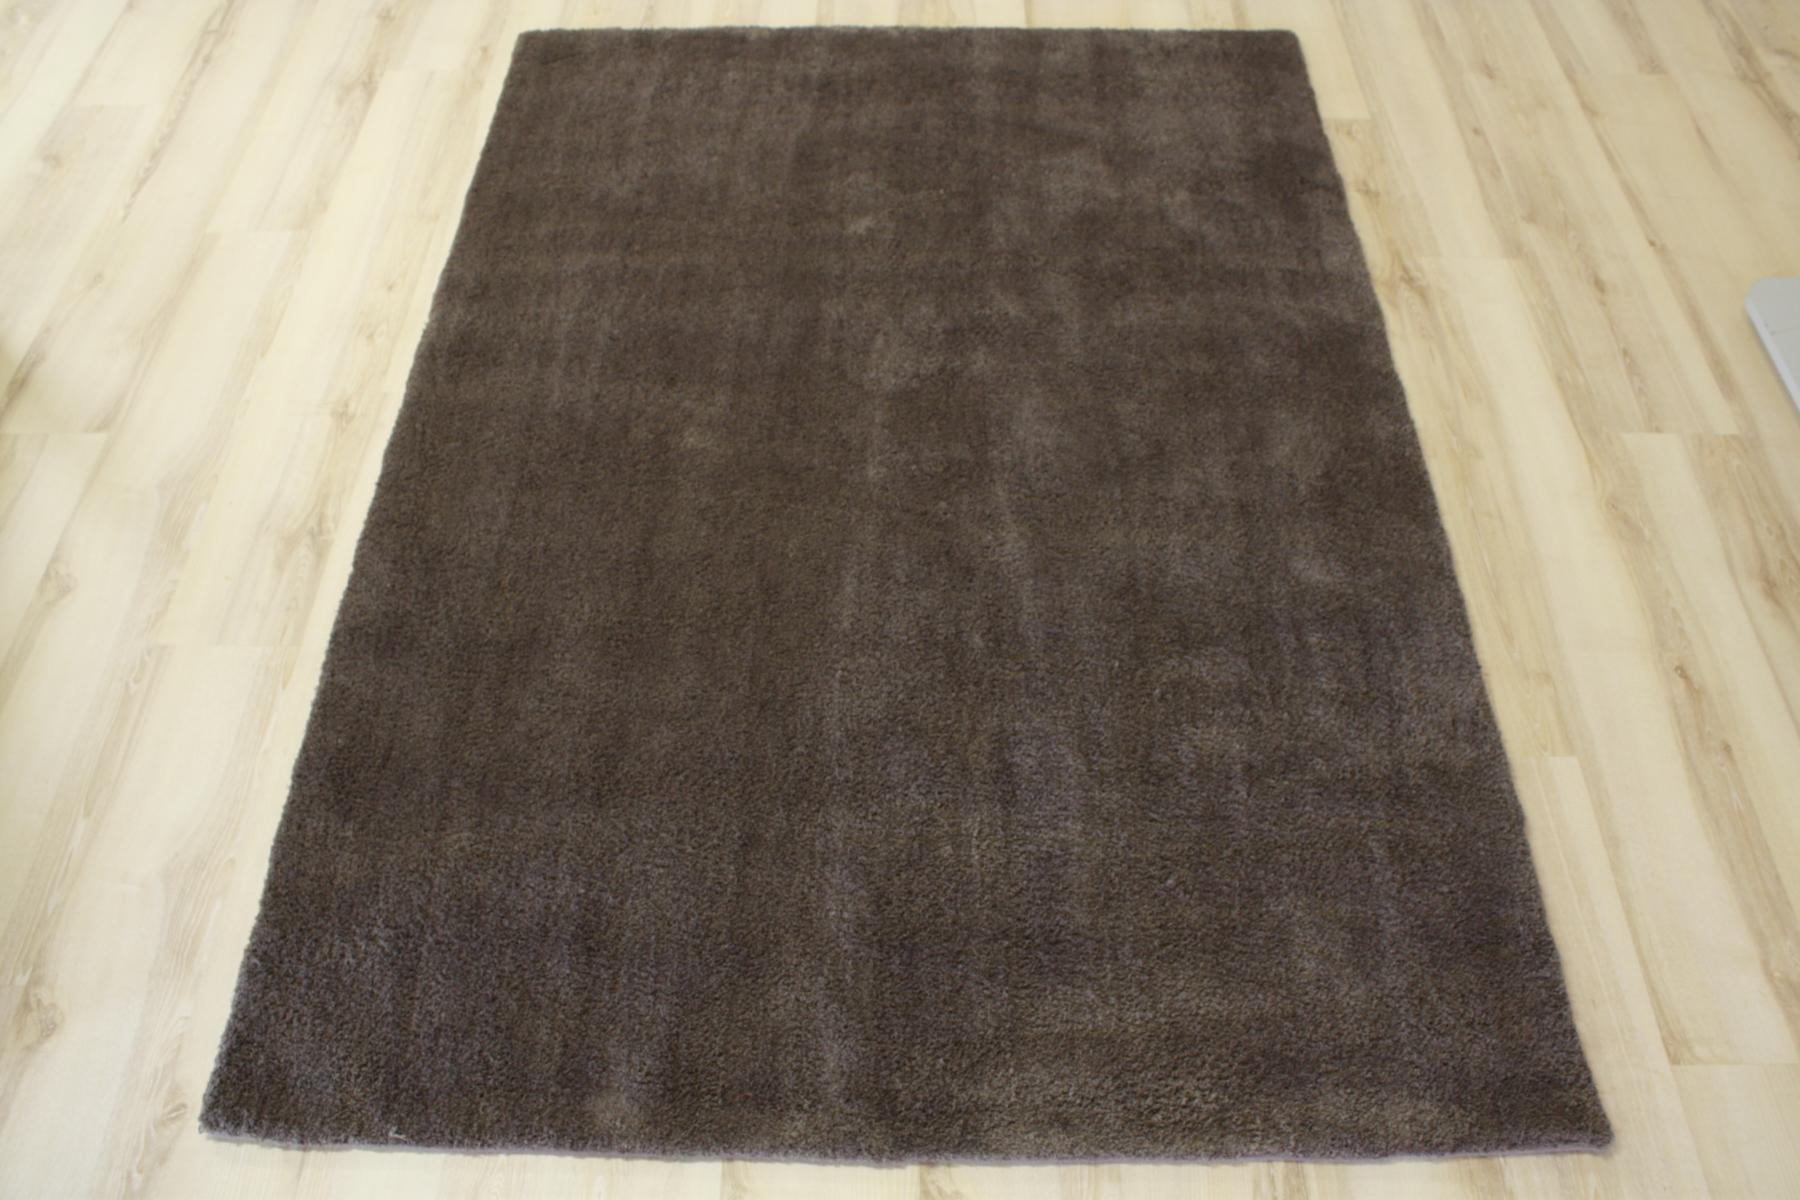 tapis poil long astra livorno 084 taupe 70x140 cm souple ebay. Black Bedroom Furniture Sets. Home Design Ideas